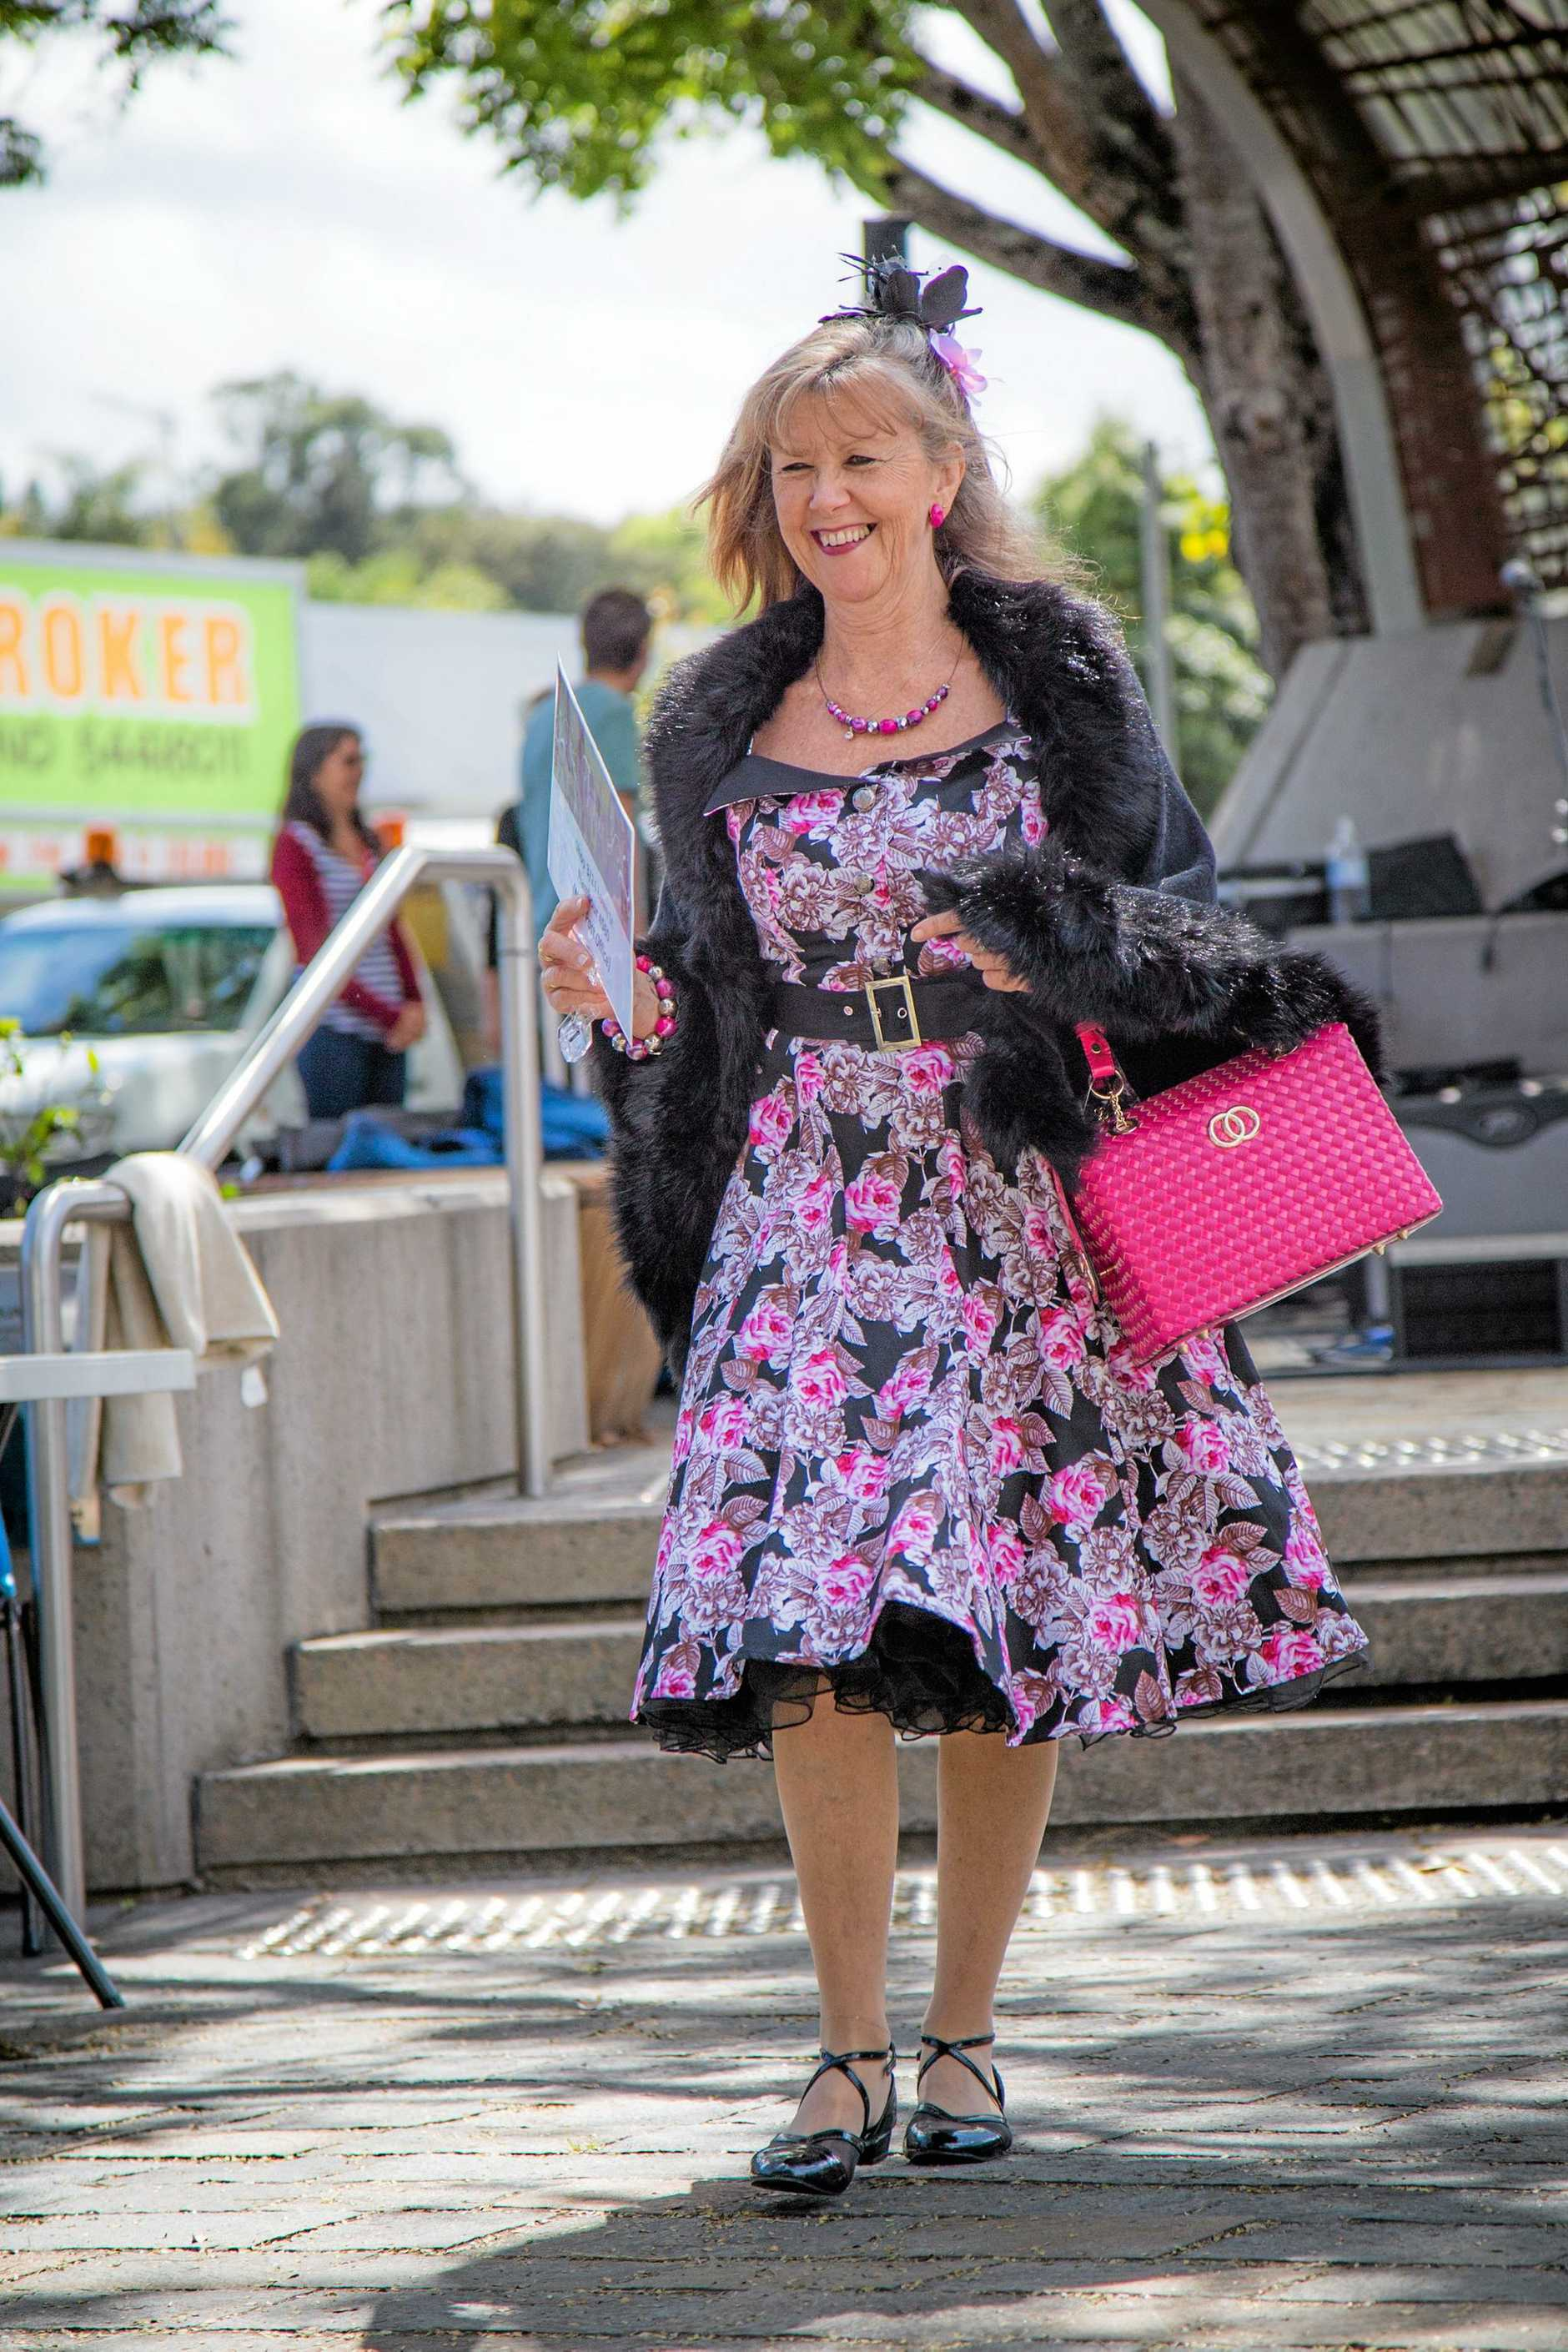 Kath modelling fashion from Tiptoe Boutique.